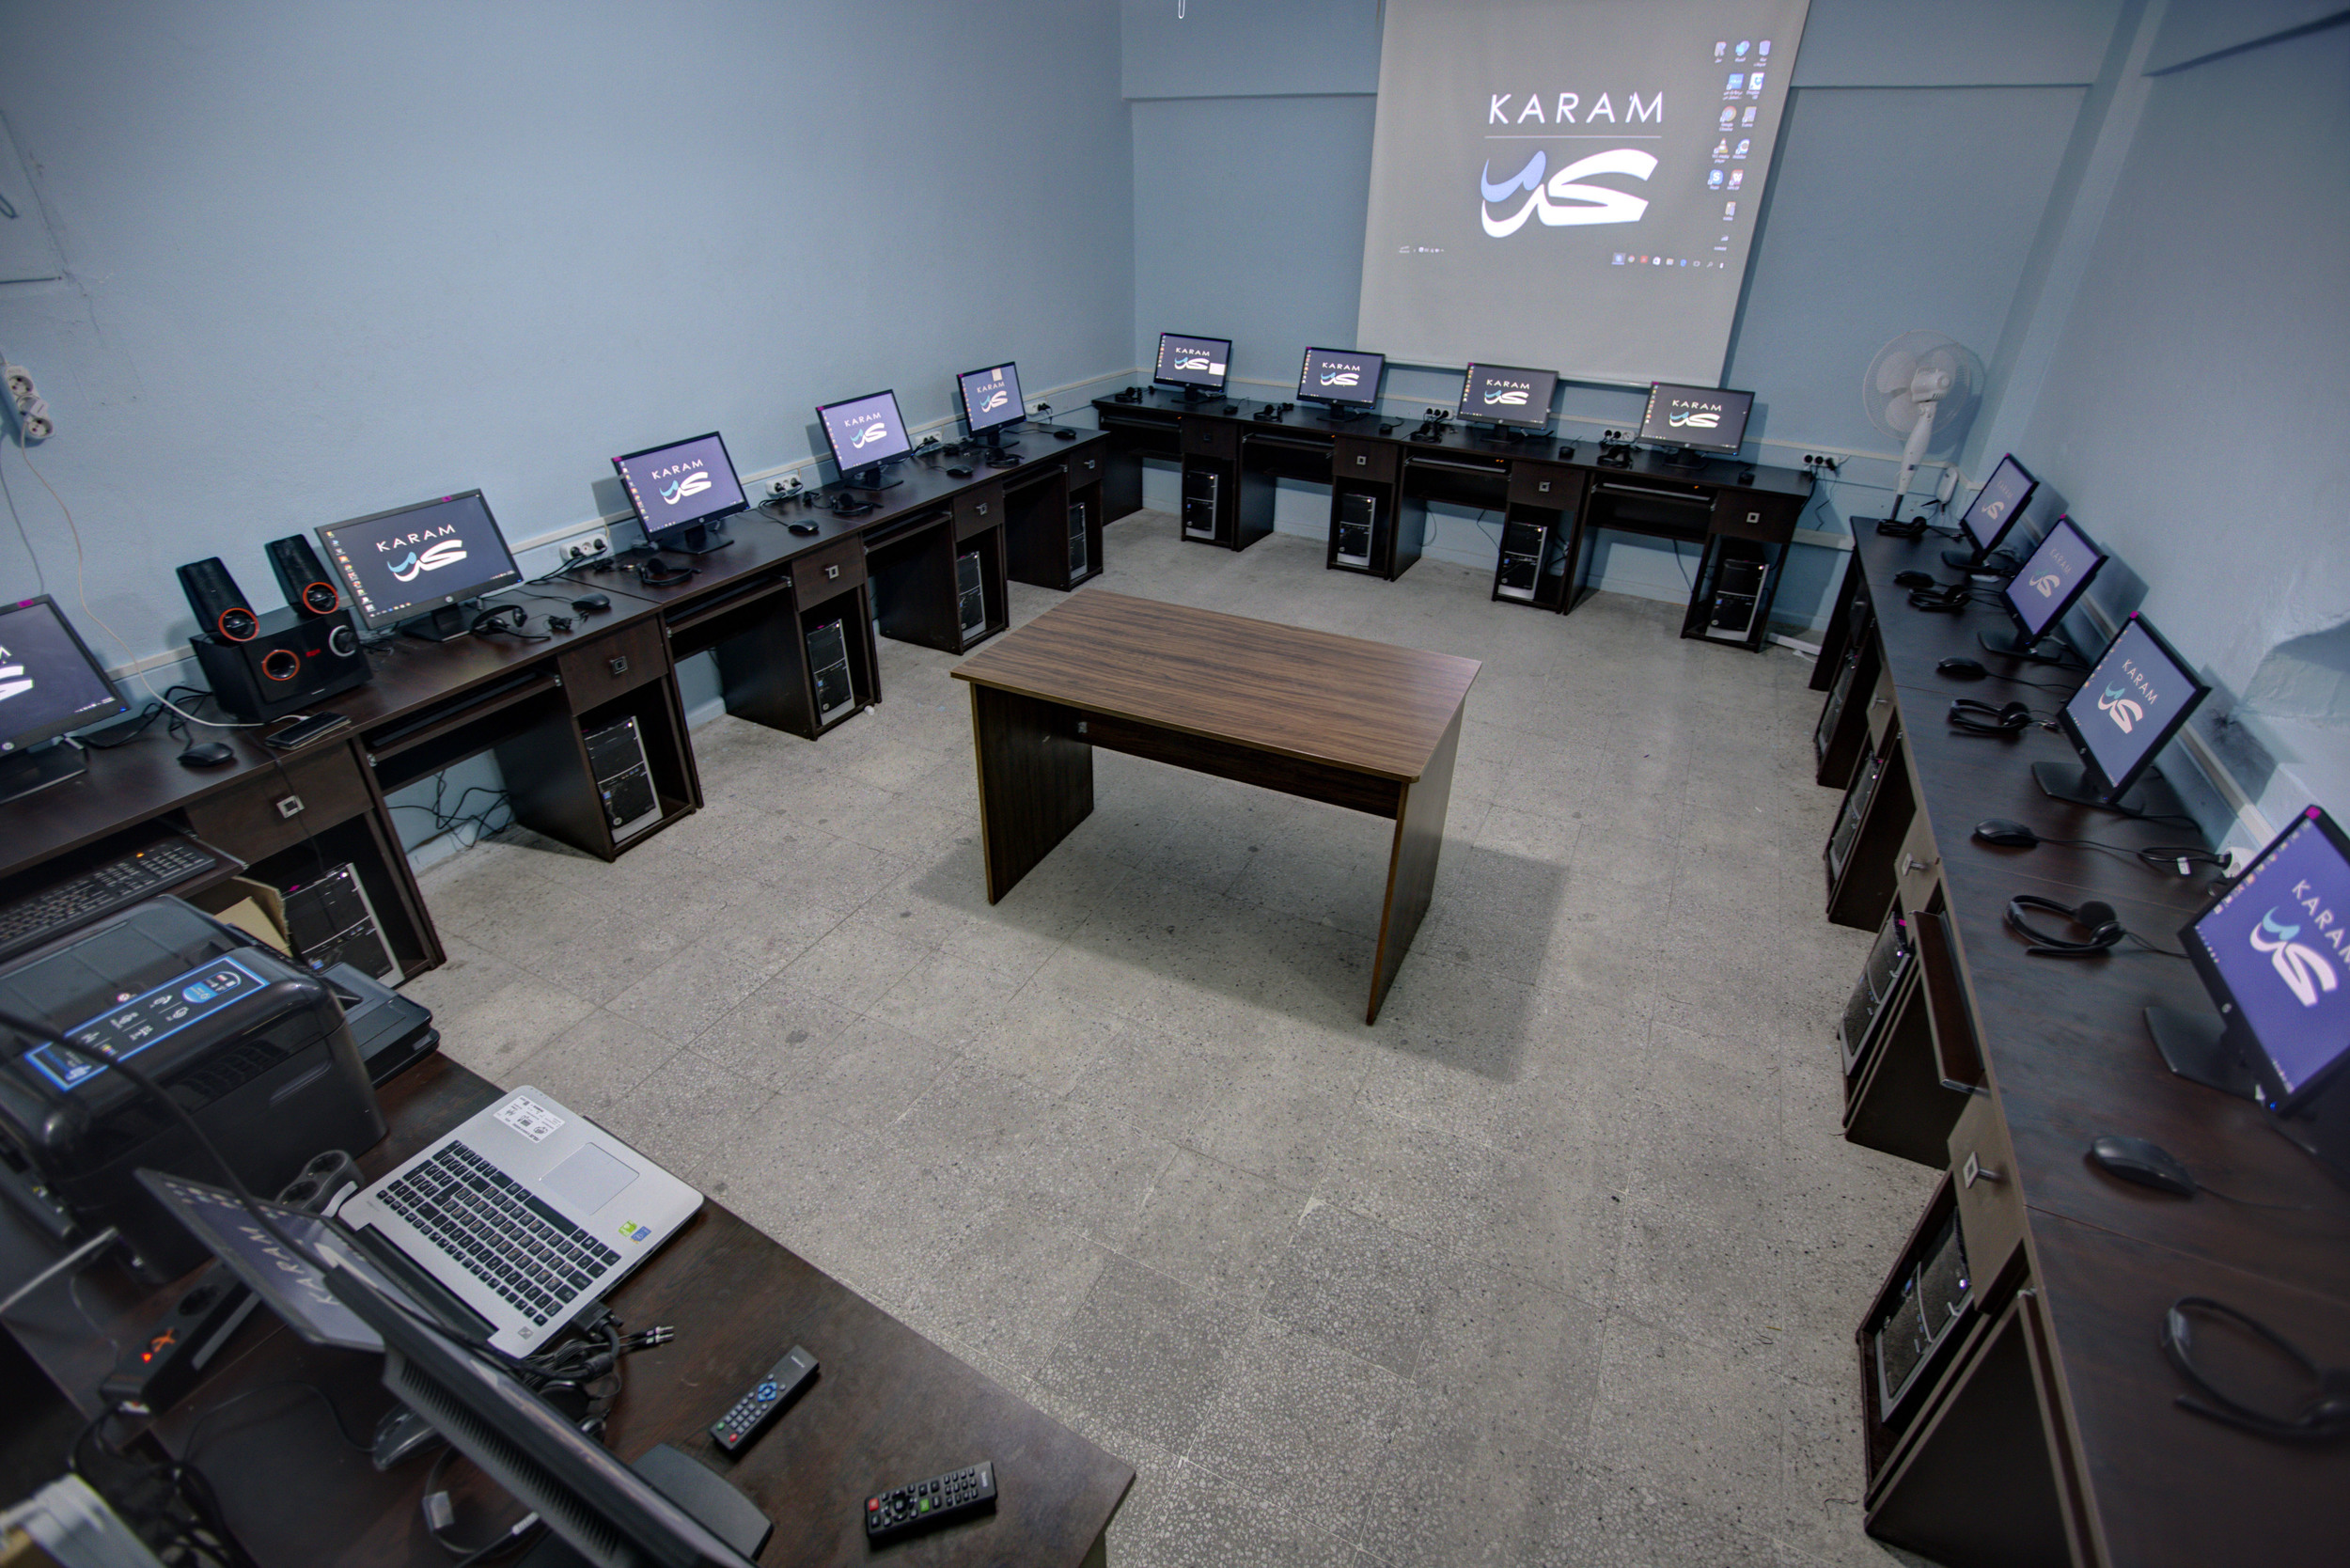 The Ruwwad School computer lab, set up by Karam